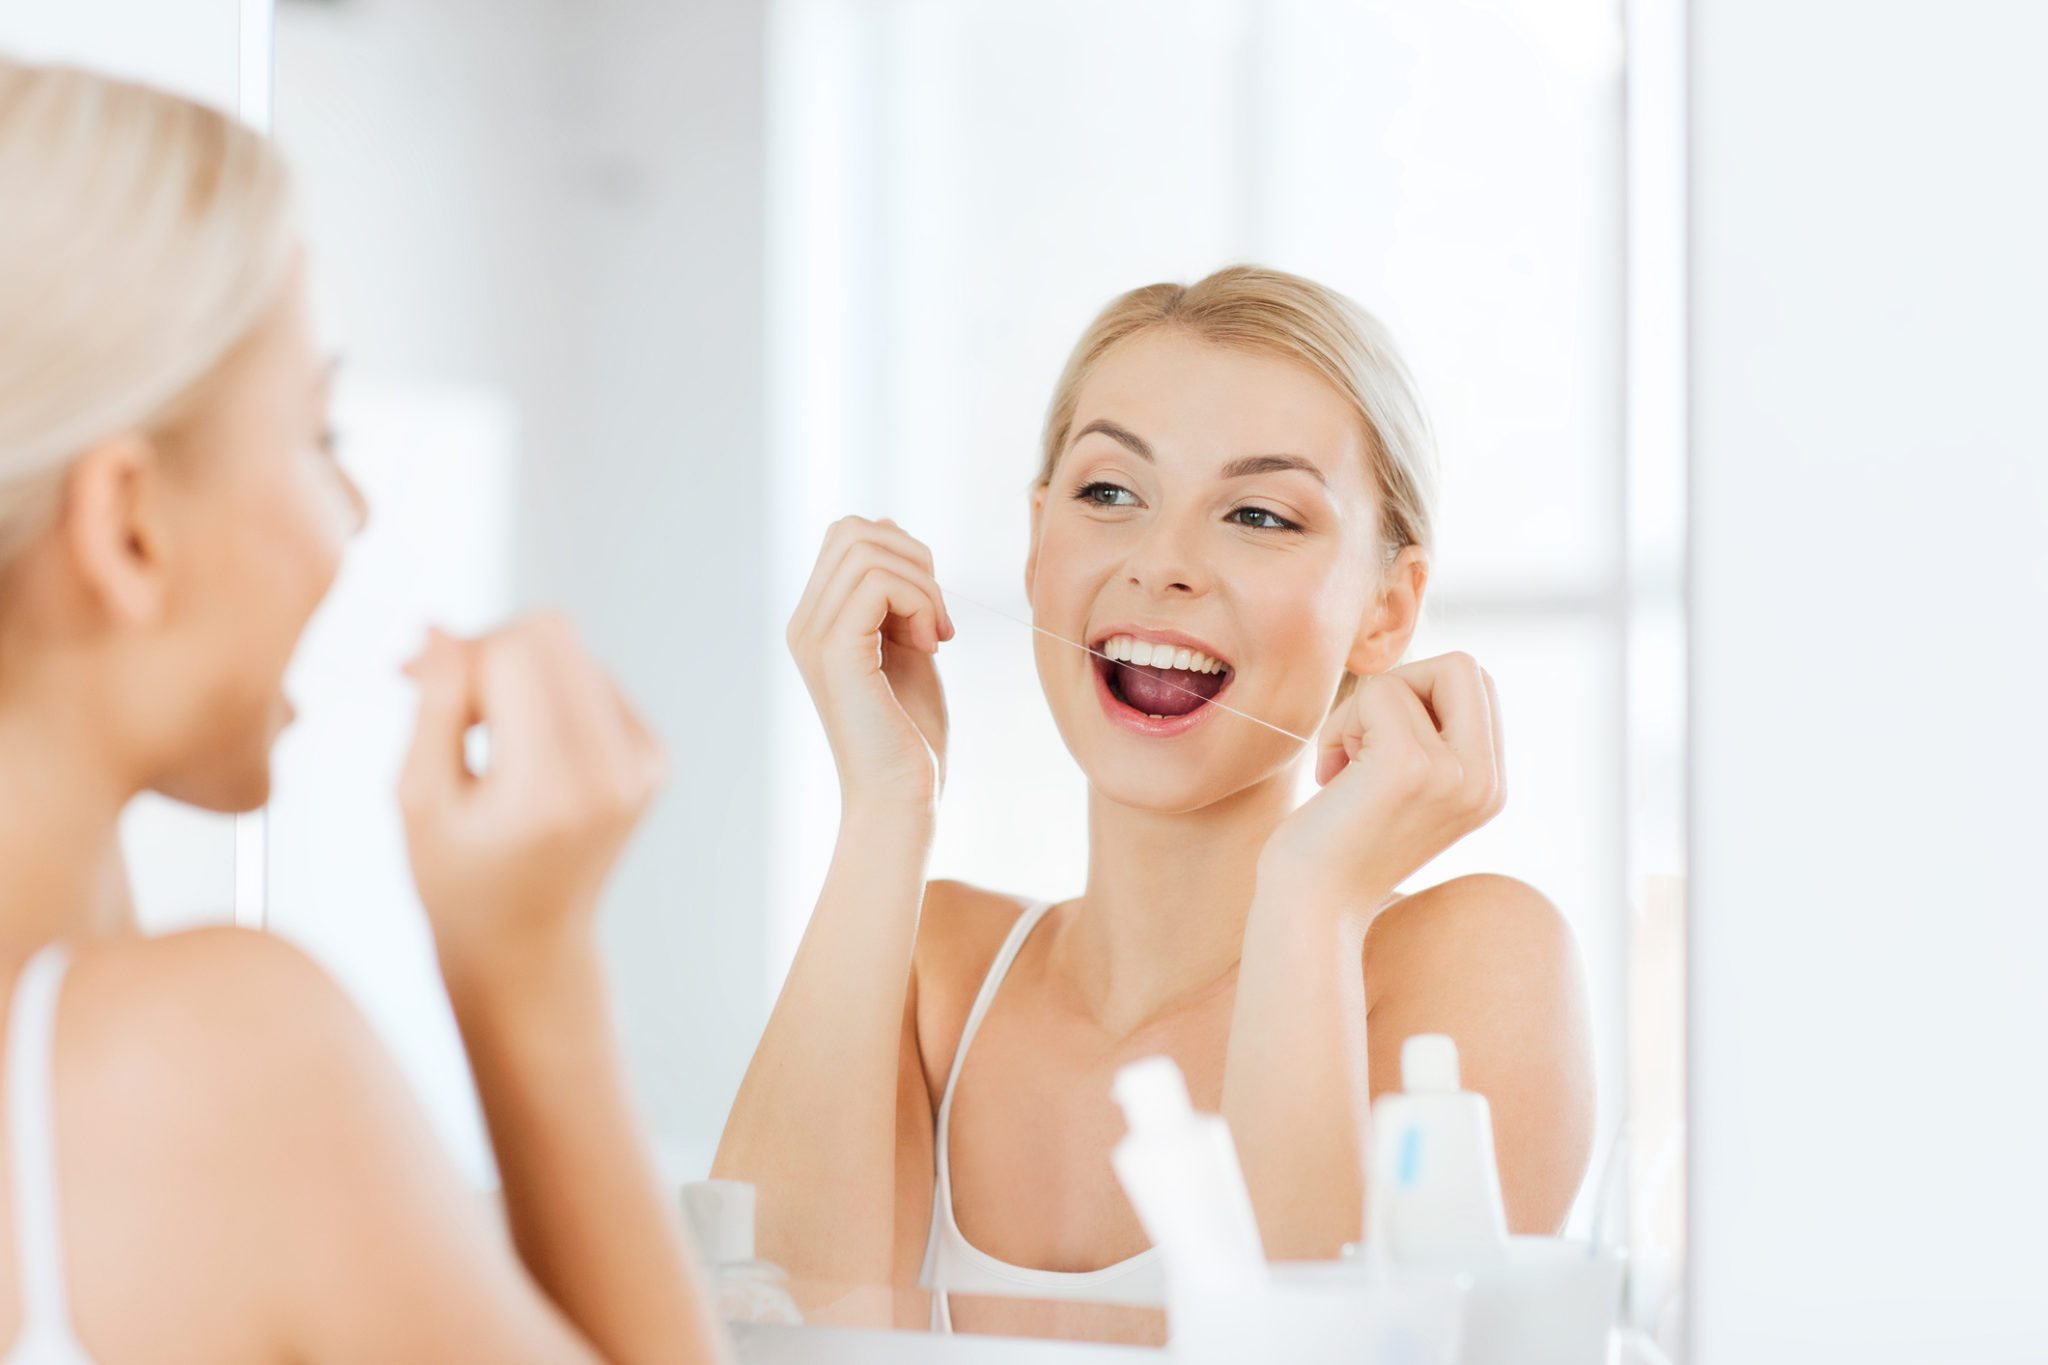 Should You Brush Before Or After Flossing